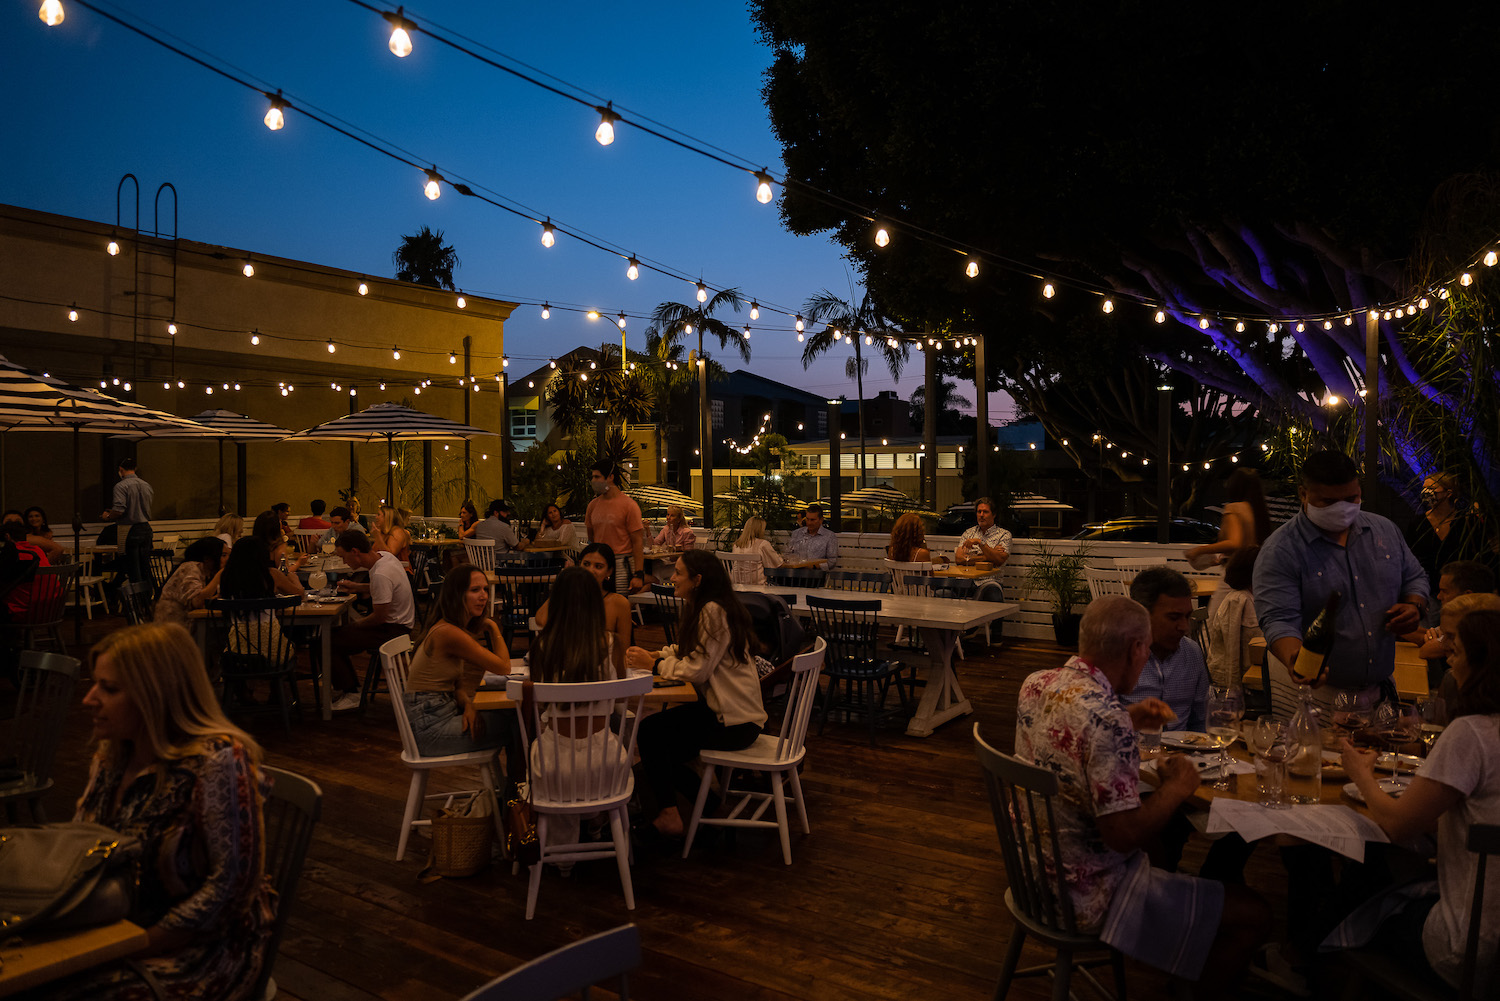 The Best Restaurant Patios For Outdoor Dining In San Diego